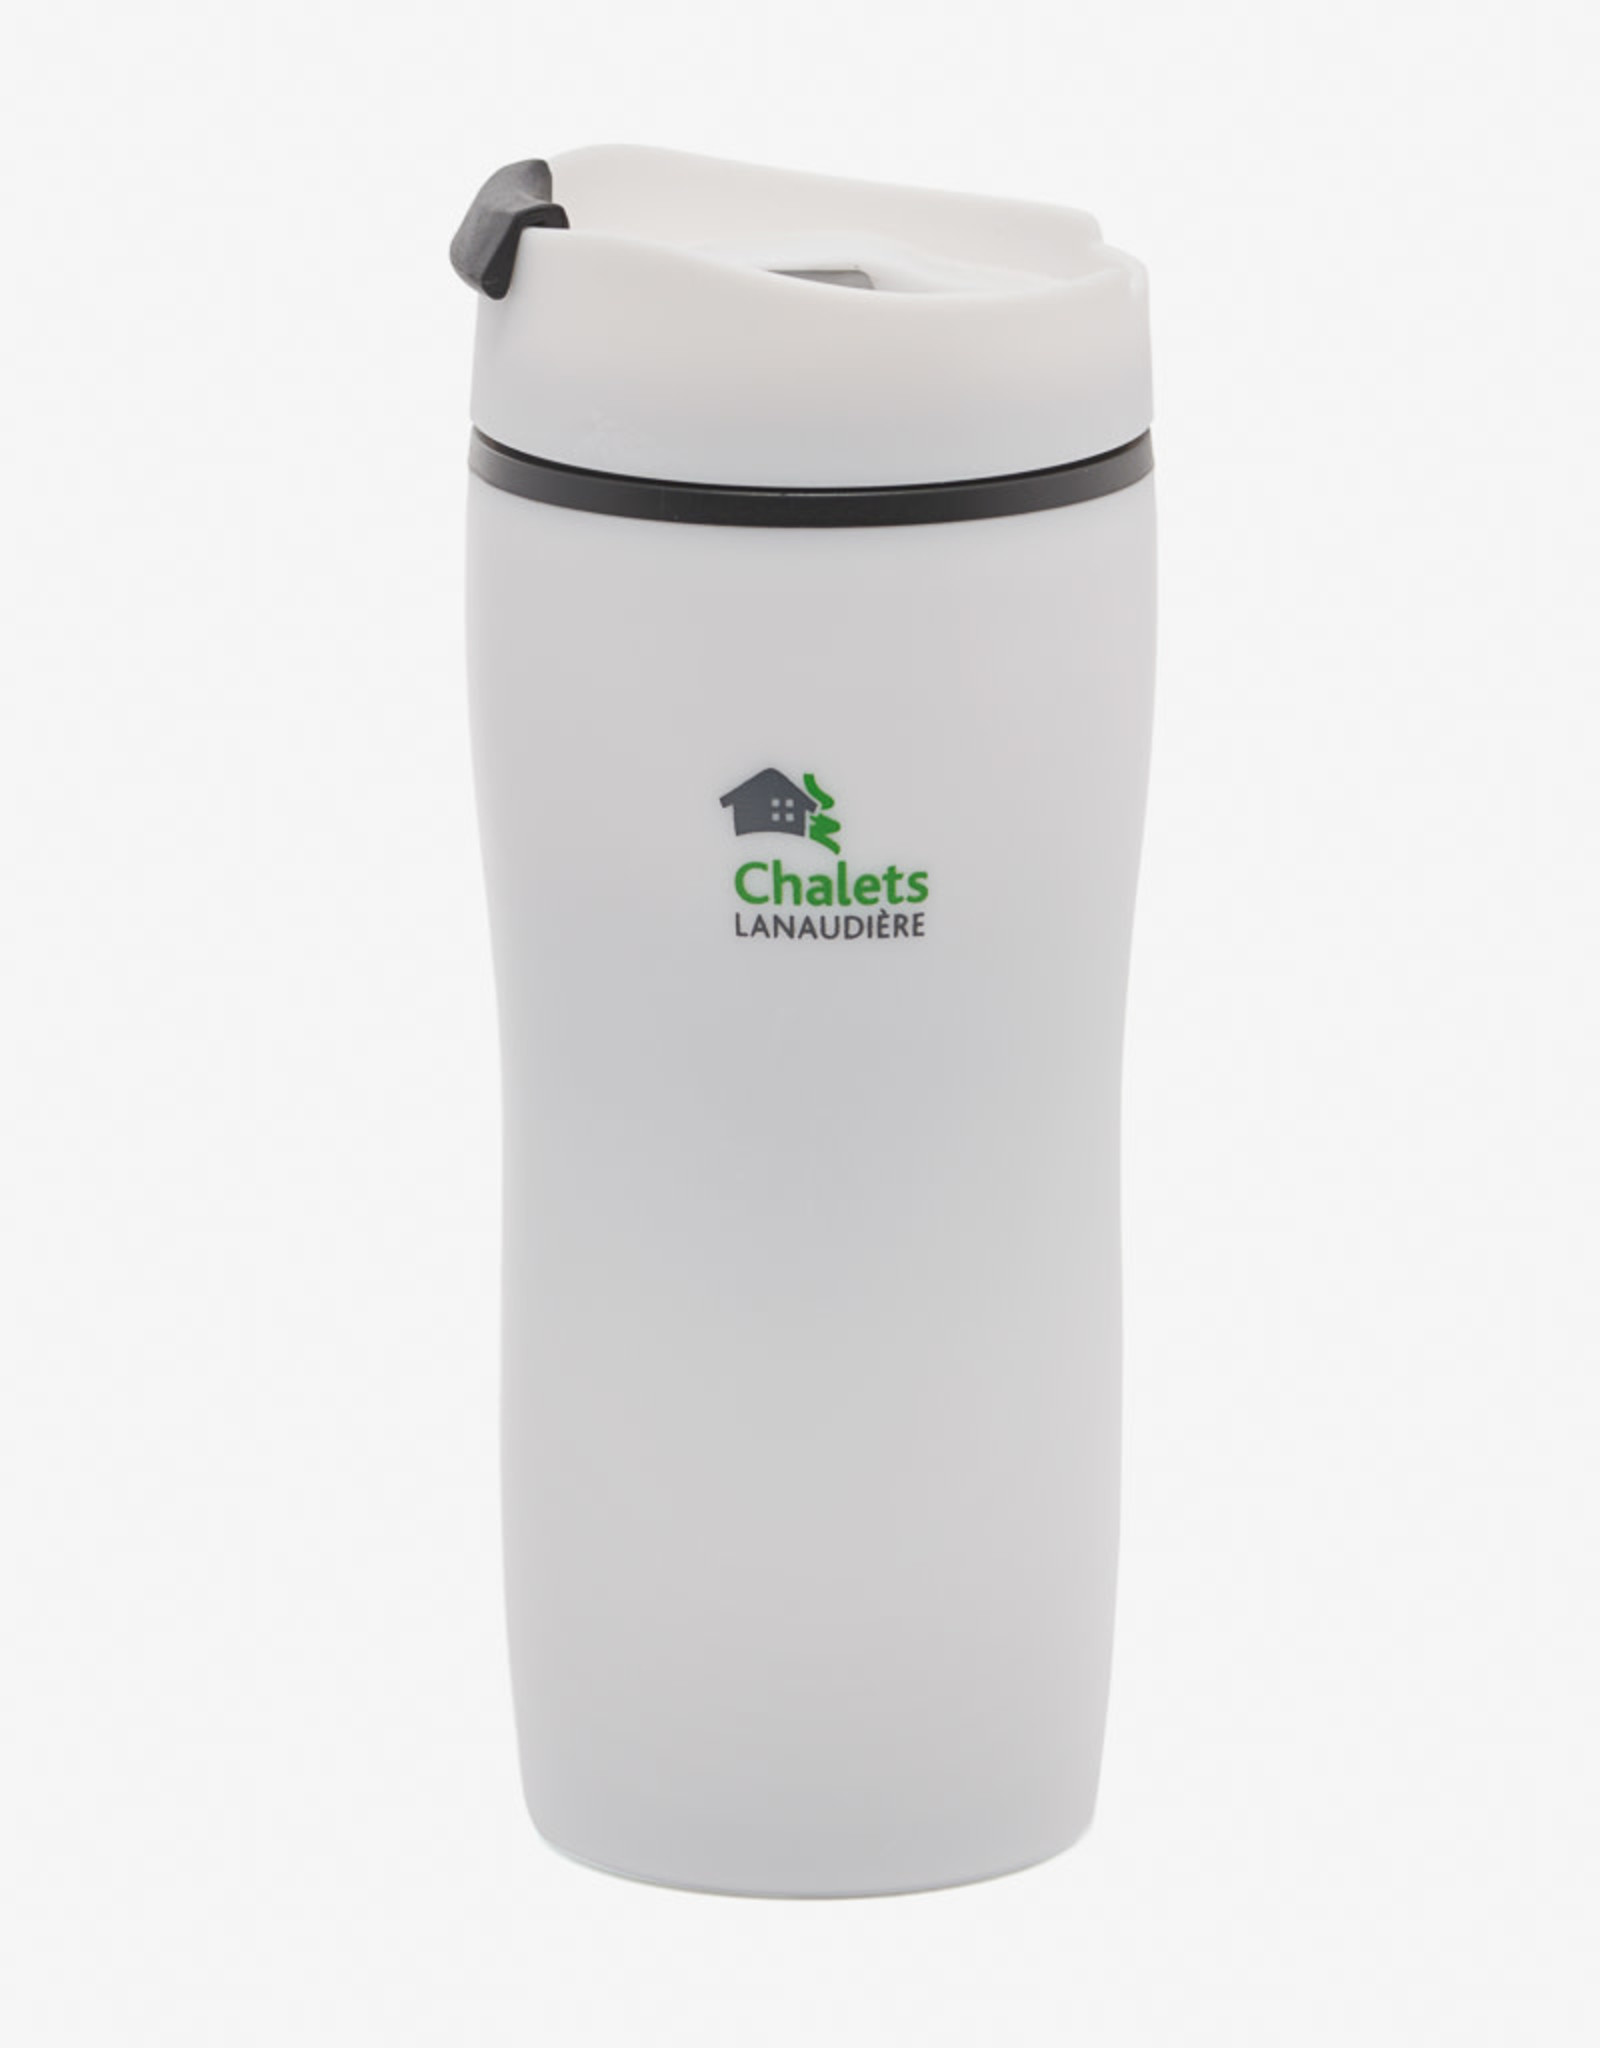 Insulated coffee cup, plastic 20 oz white